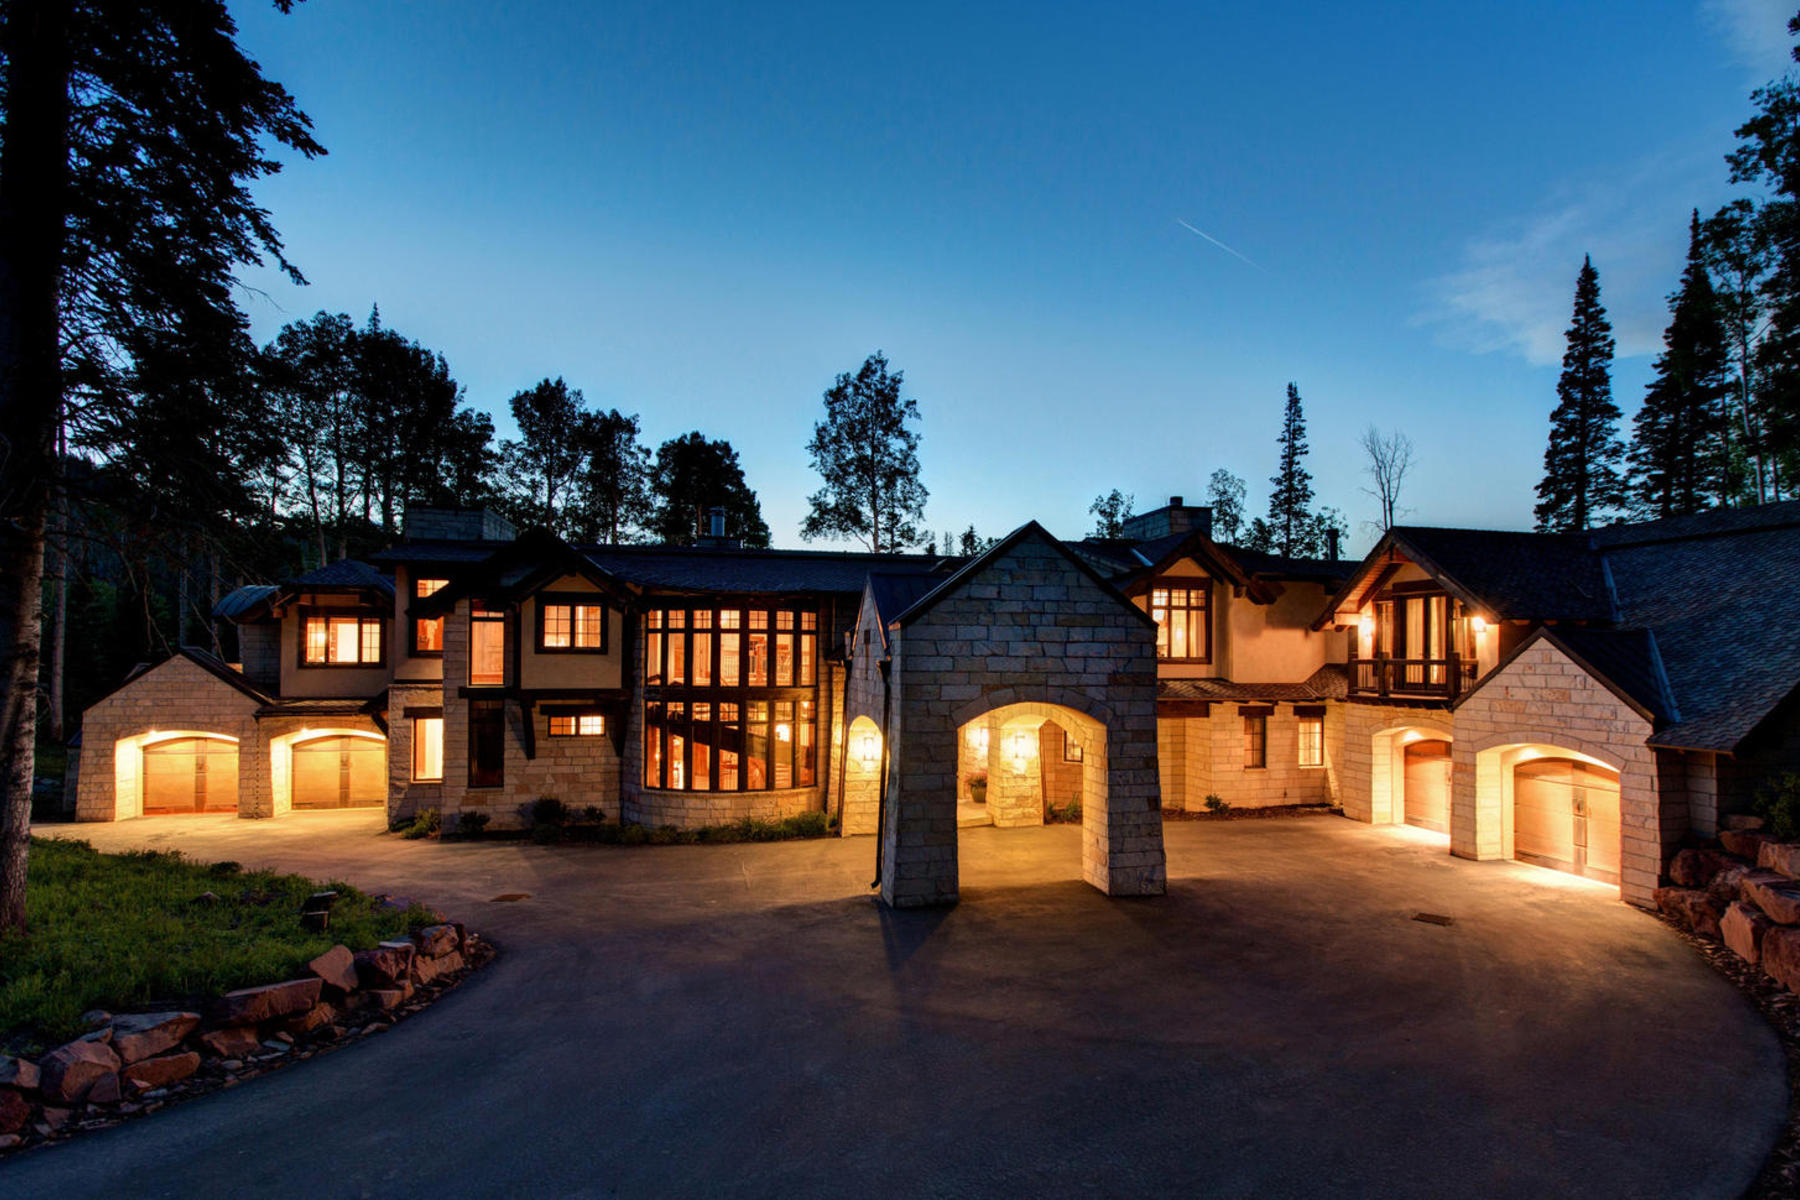 단독 가정 주택 용 매매 에 Unique Privacy and Seclusion with Unparalleled Ski Access 98 White Pine Canyon Rd Park City, 유타 84098 미국